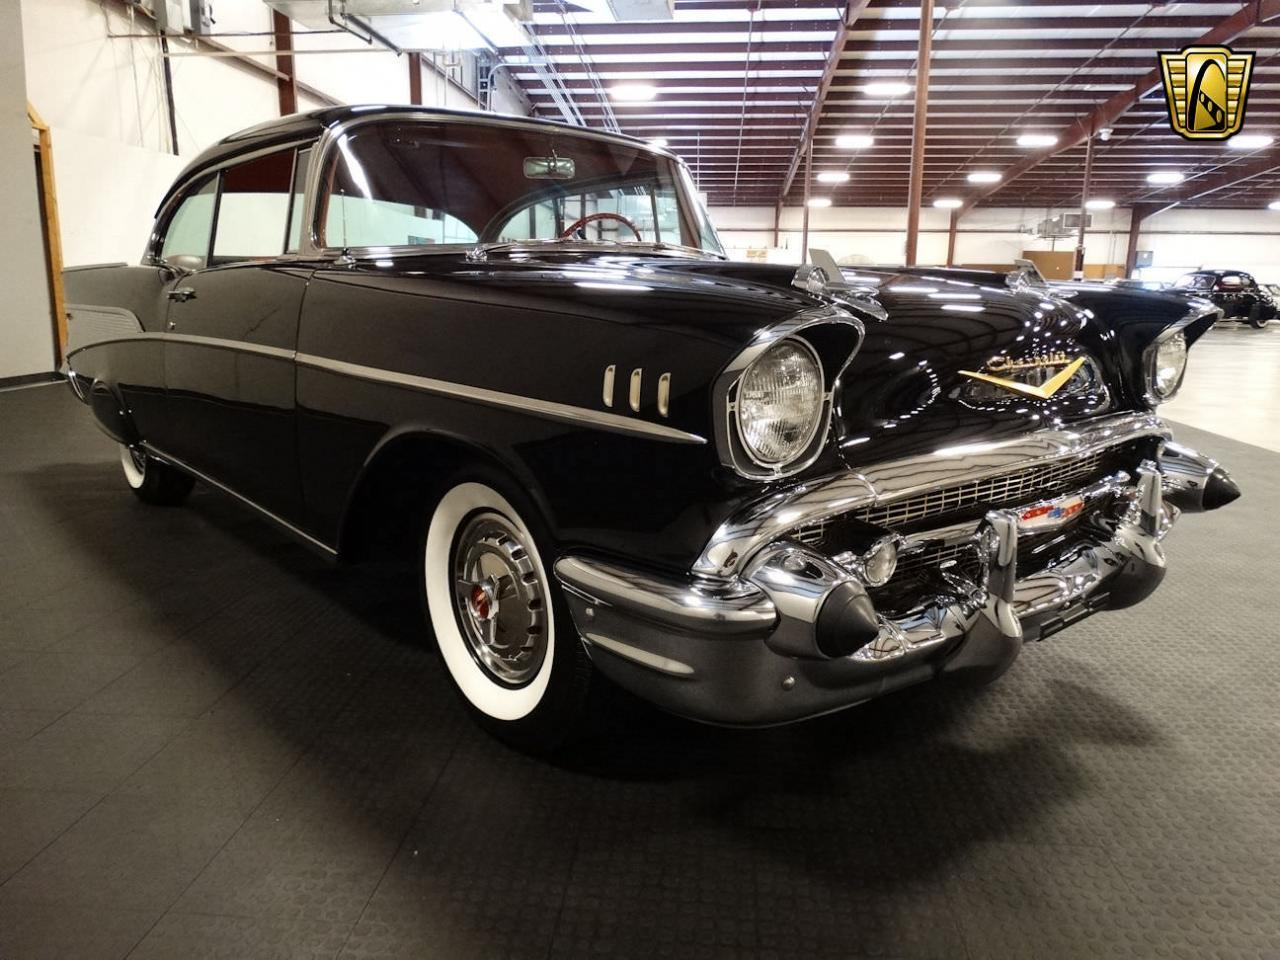 Large Picture of Classic '57 Chevrolet Bel Air located in Indiana - $65,000.00 Offered by Gateway Classic Cars - Louisville - LDC7